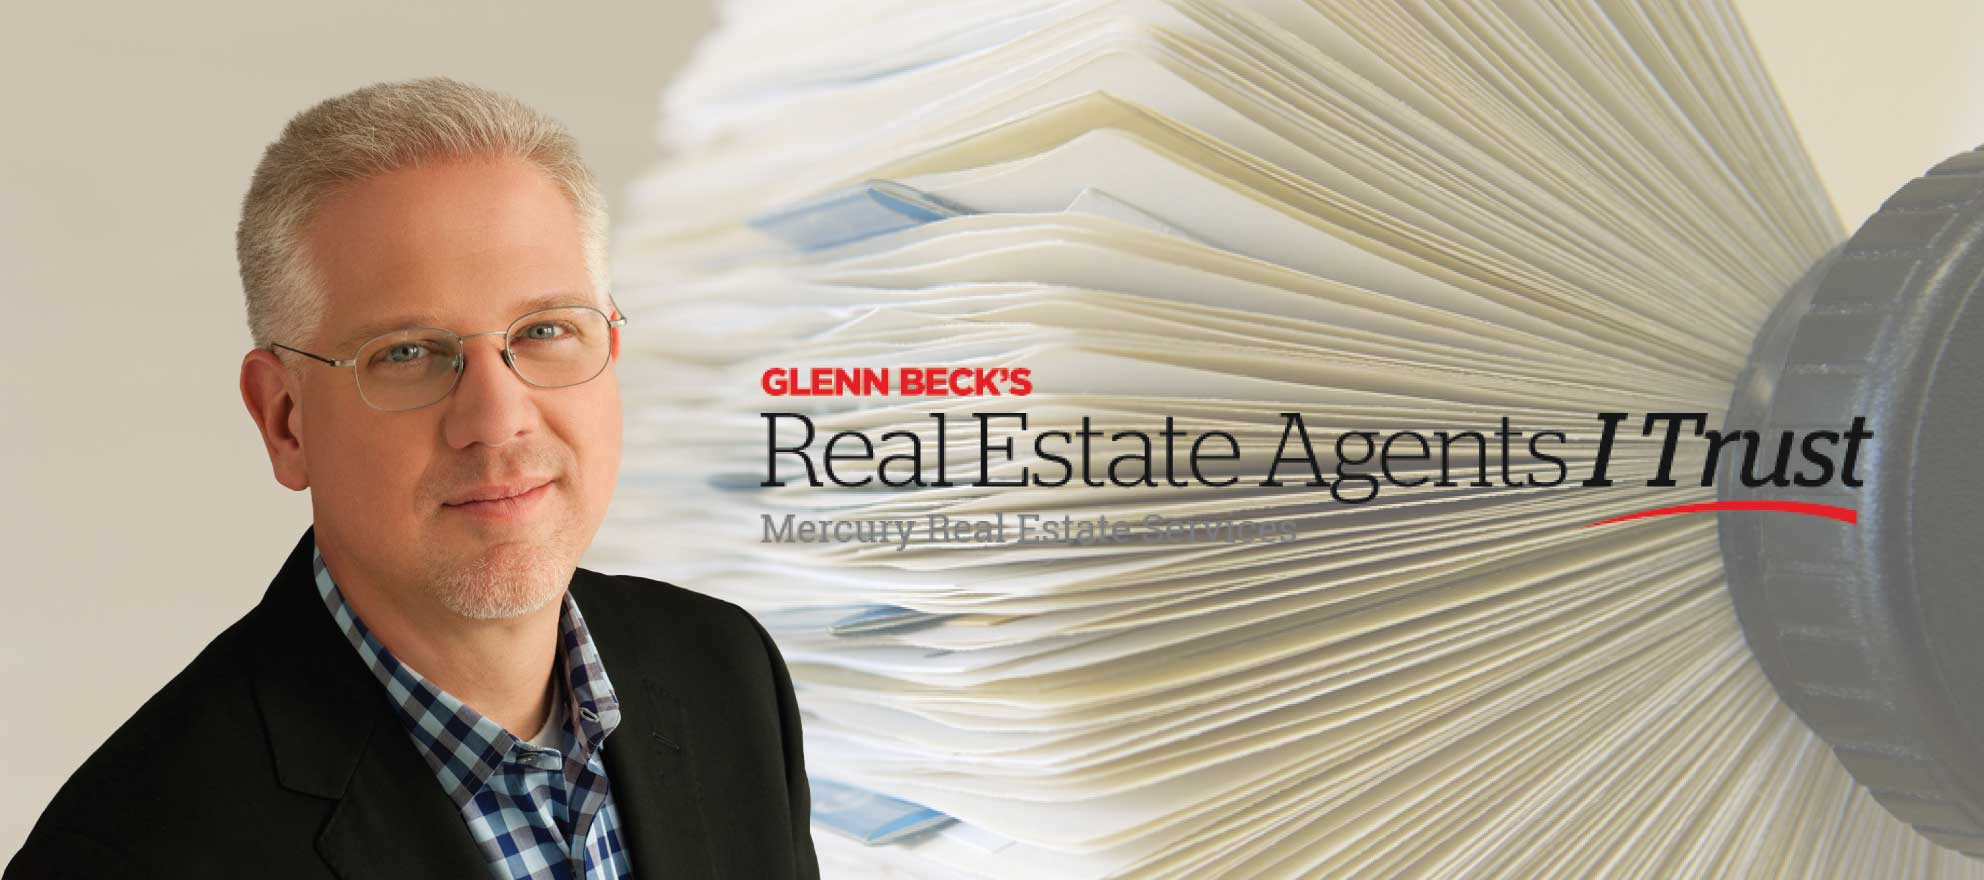 Real Estate Agents I Trust: Right-wing radio host Glenn Beck promoting his real estate referral network